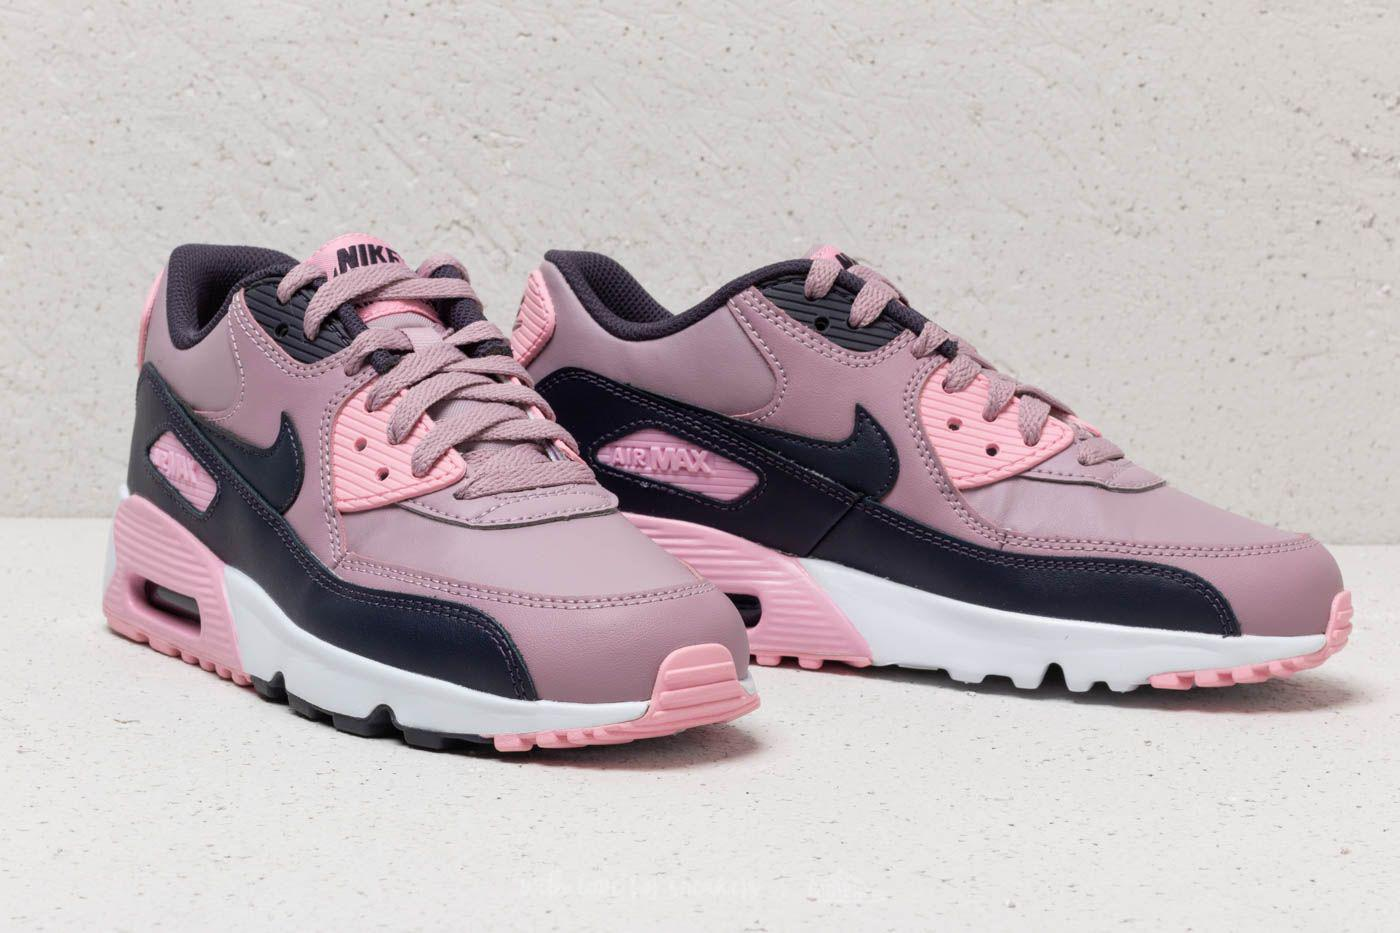 4be9ce447 ... top quality nike air max 90 leather gs elemental rose gridiron pink .  view fullscreen a9ad1